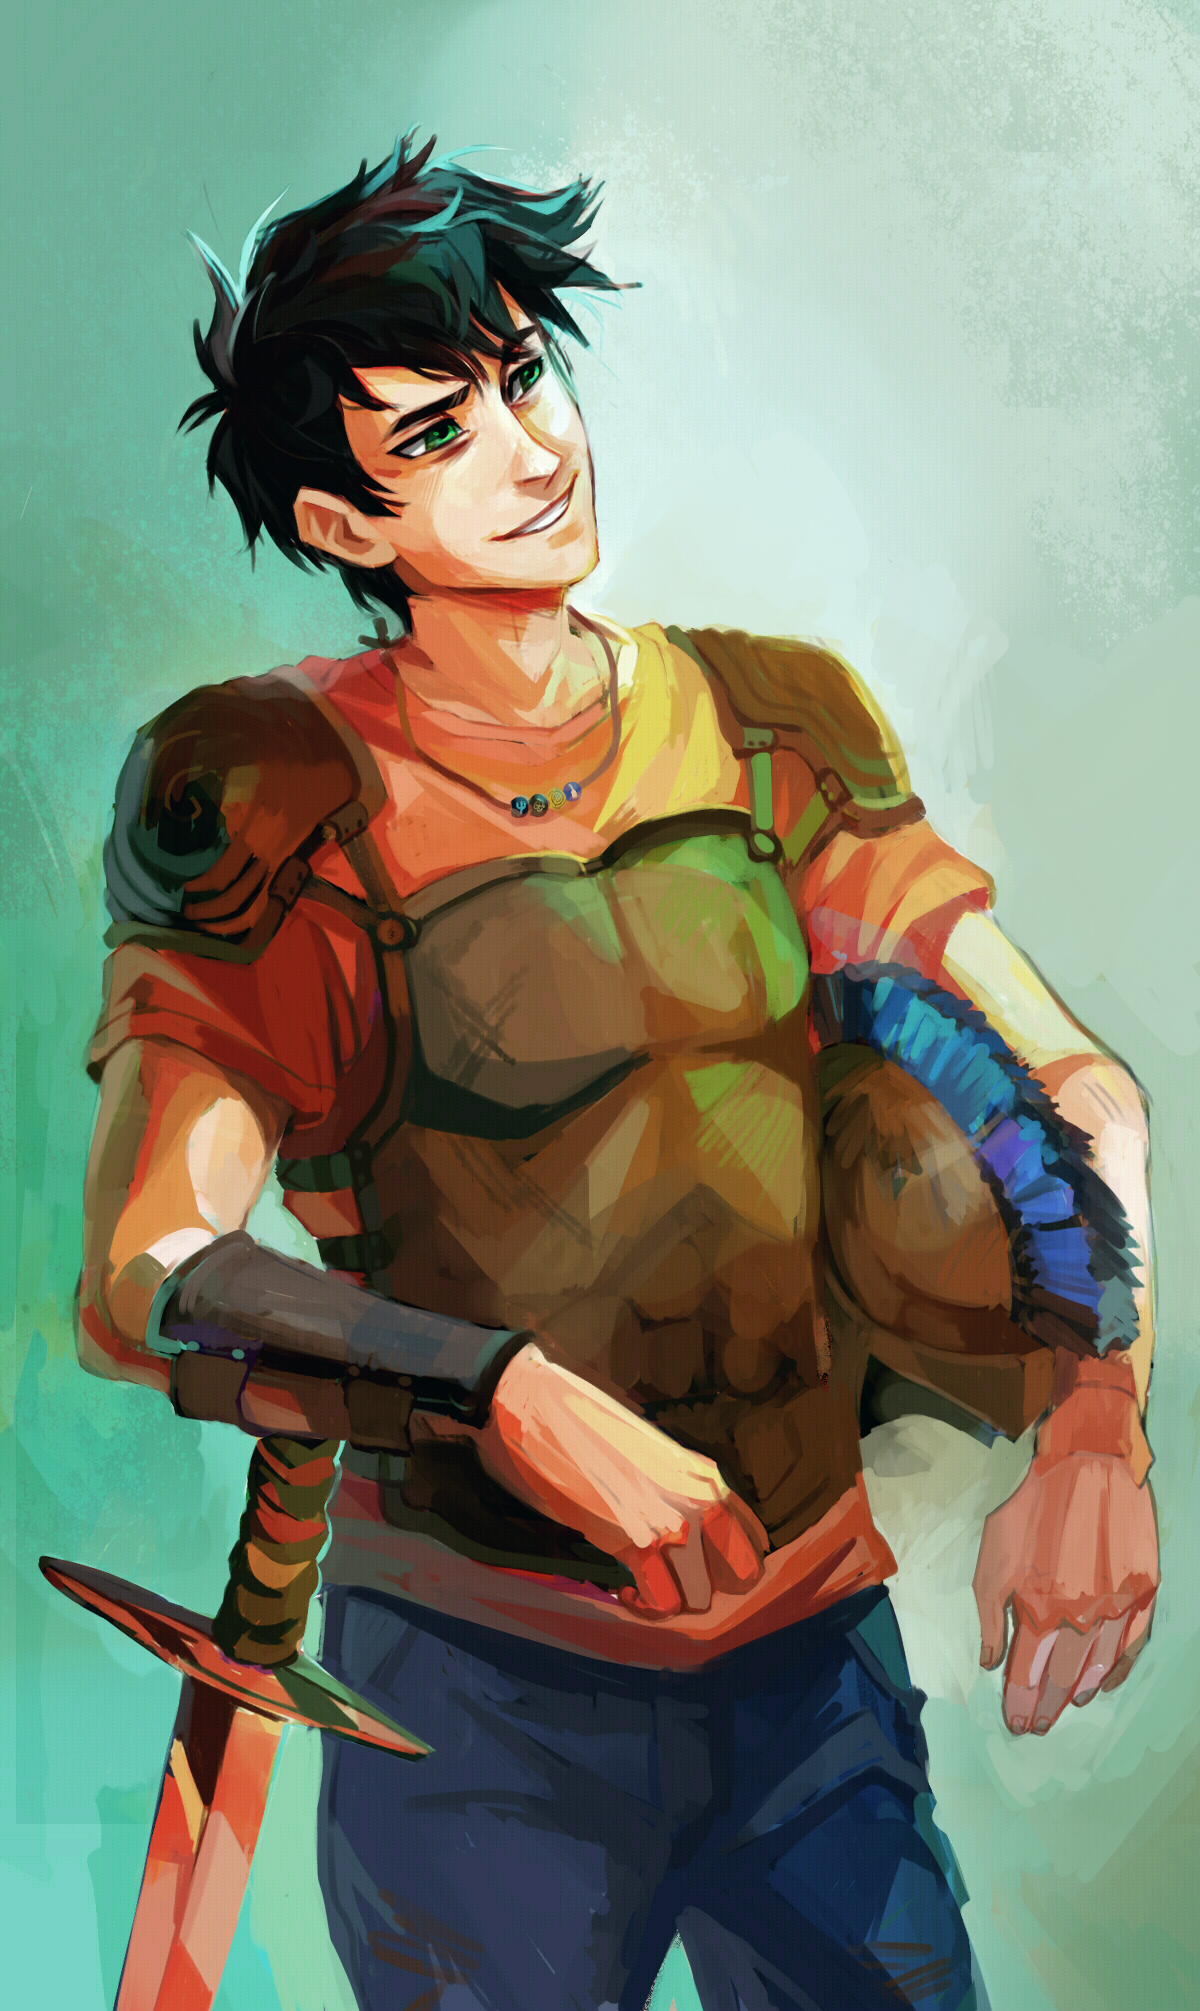 Percy Jackson | Riordan Wiki | FANDOM powered by Wikia